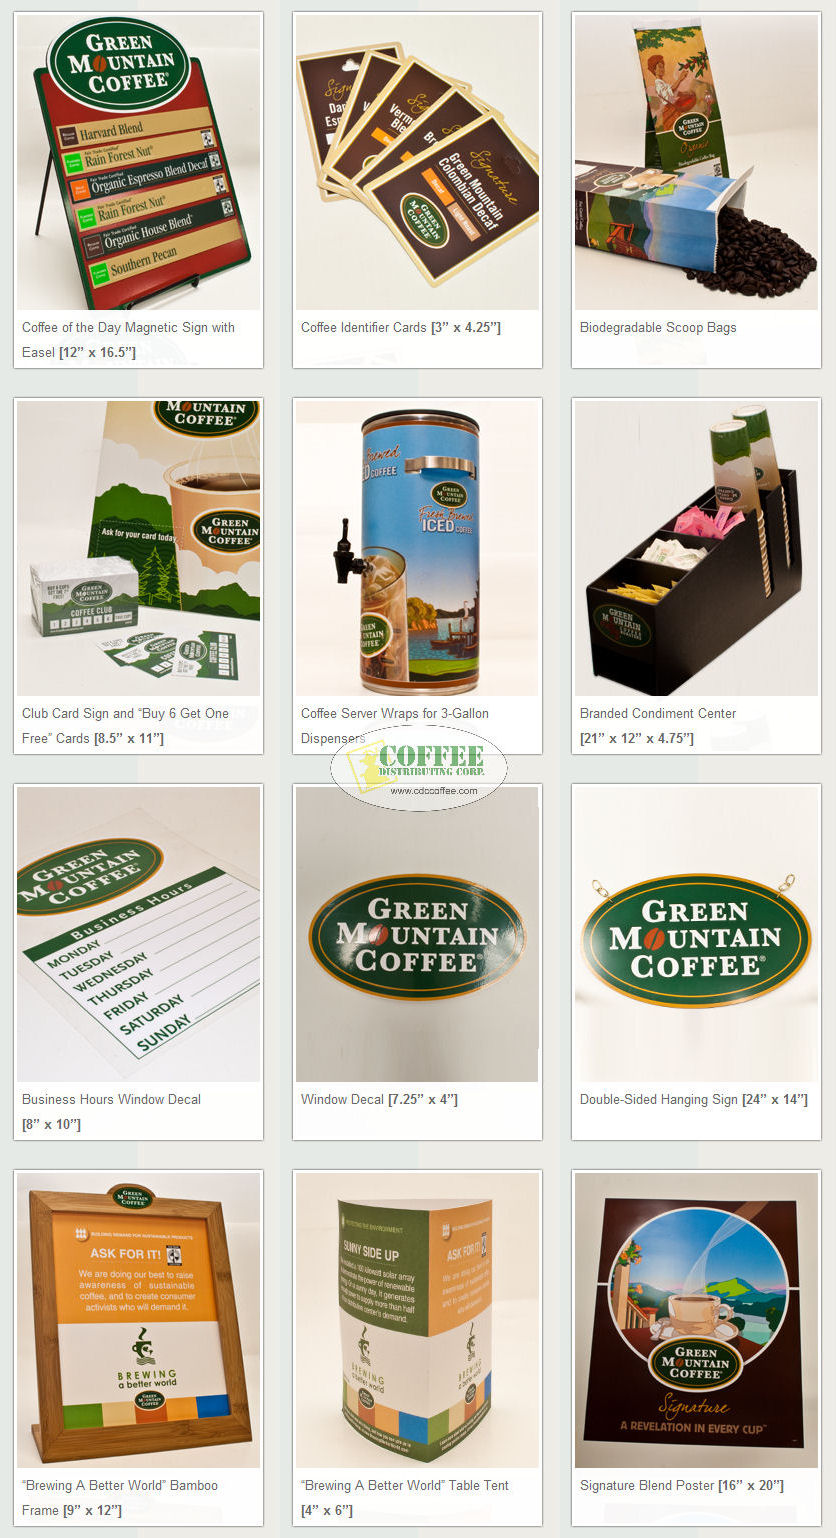 Green Mountain Point Of Sale Materials - Coffee Distributing